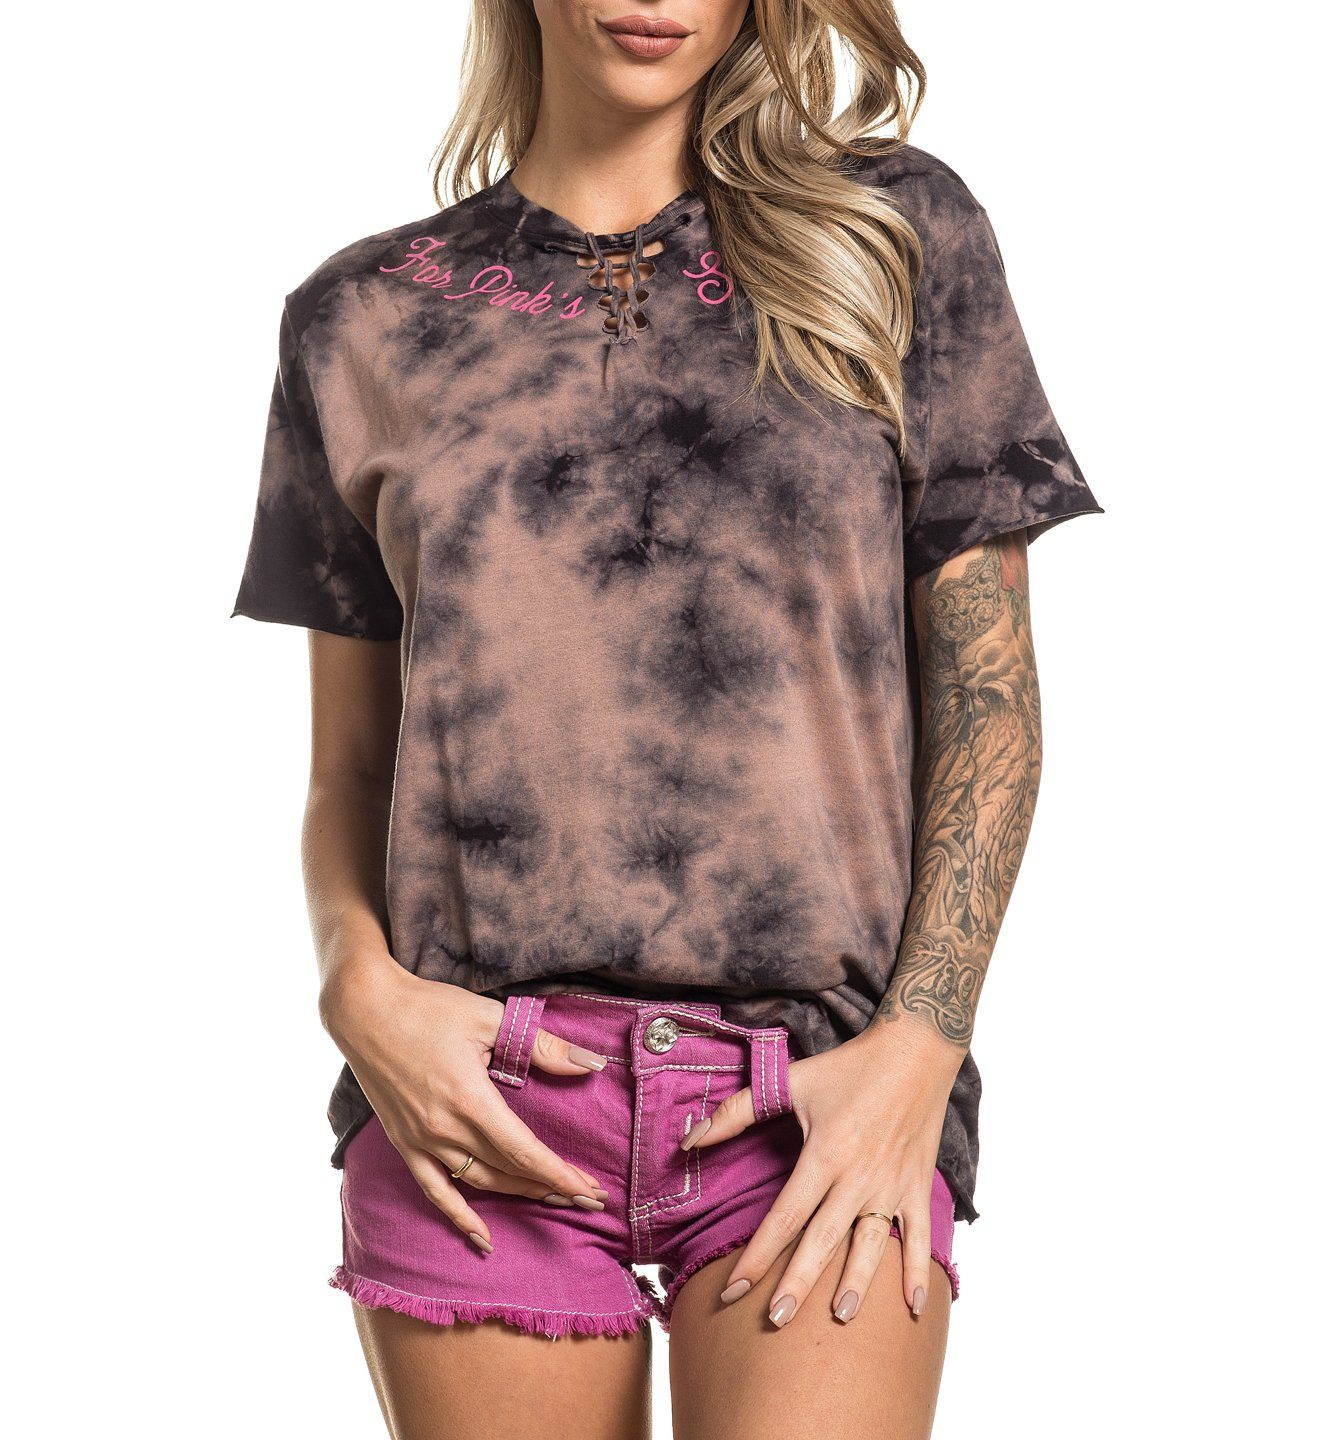 For Pink's Sake - Womens Short Sleeve Tees - Affliction Clothing